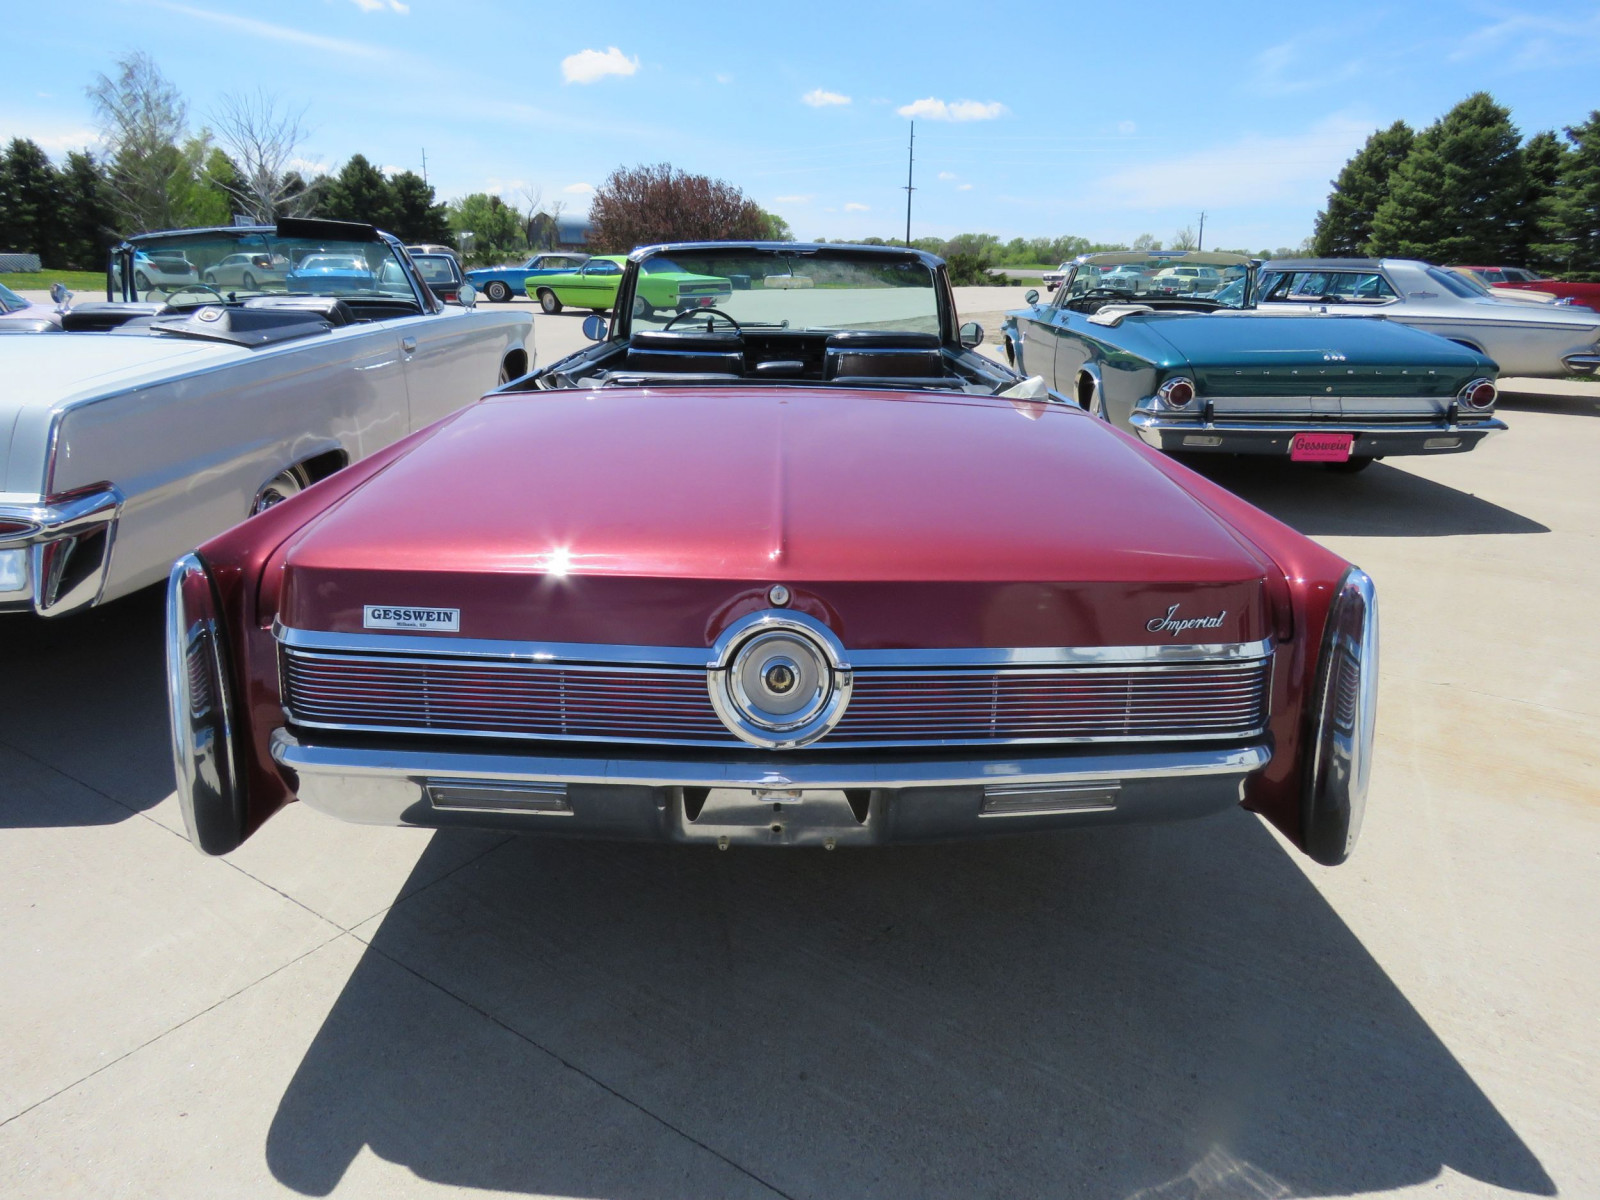 1967 Chrysler Imperial Convertible - Image 6